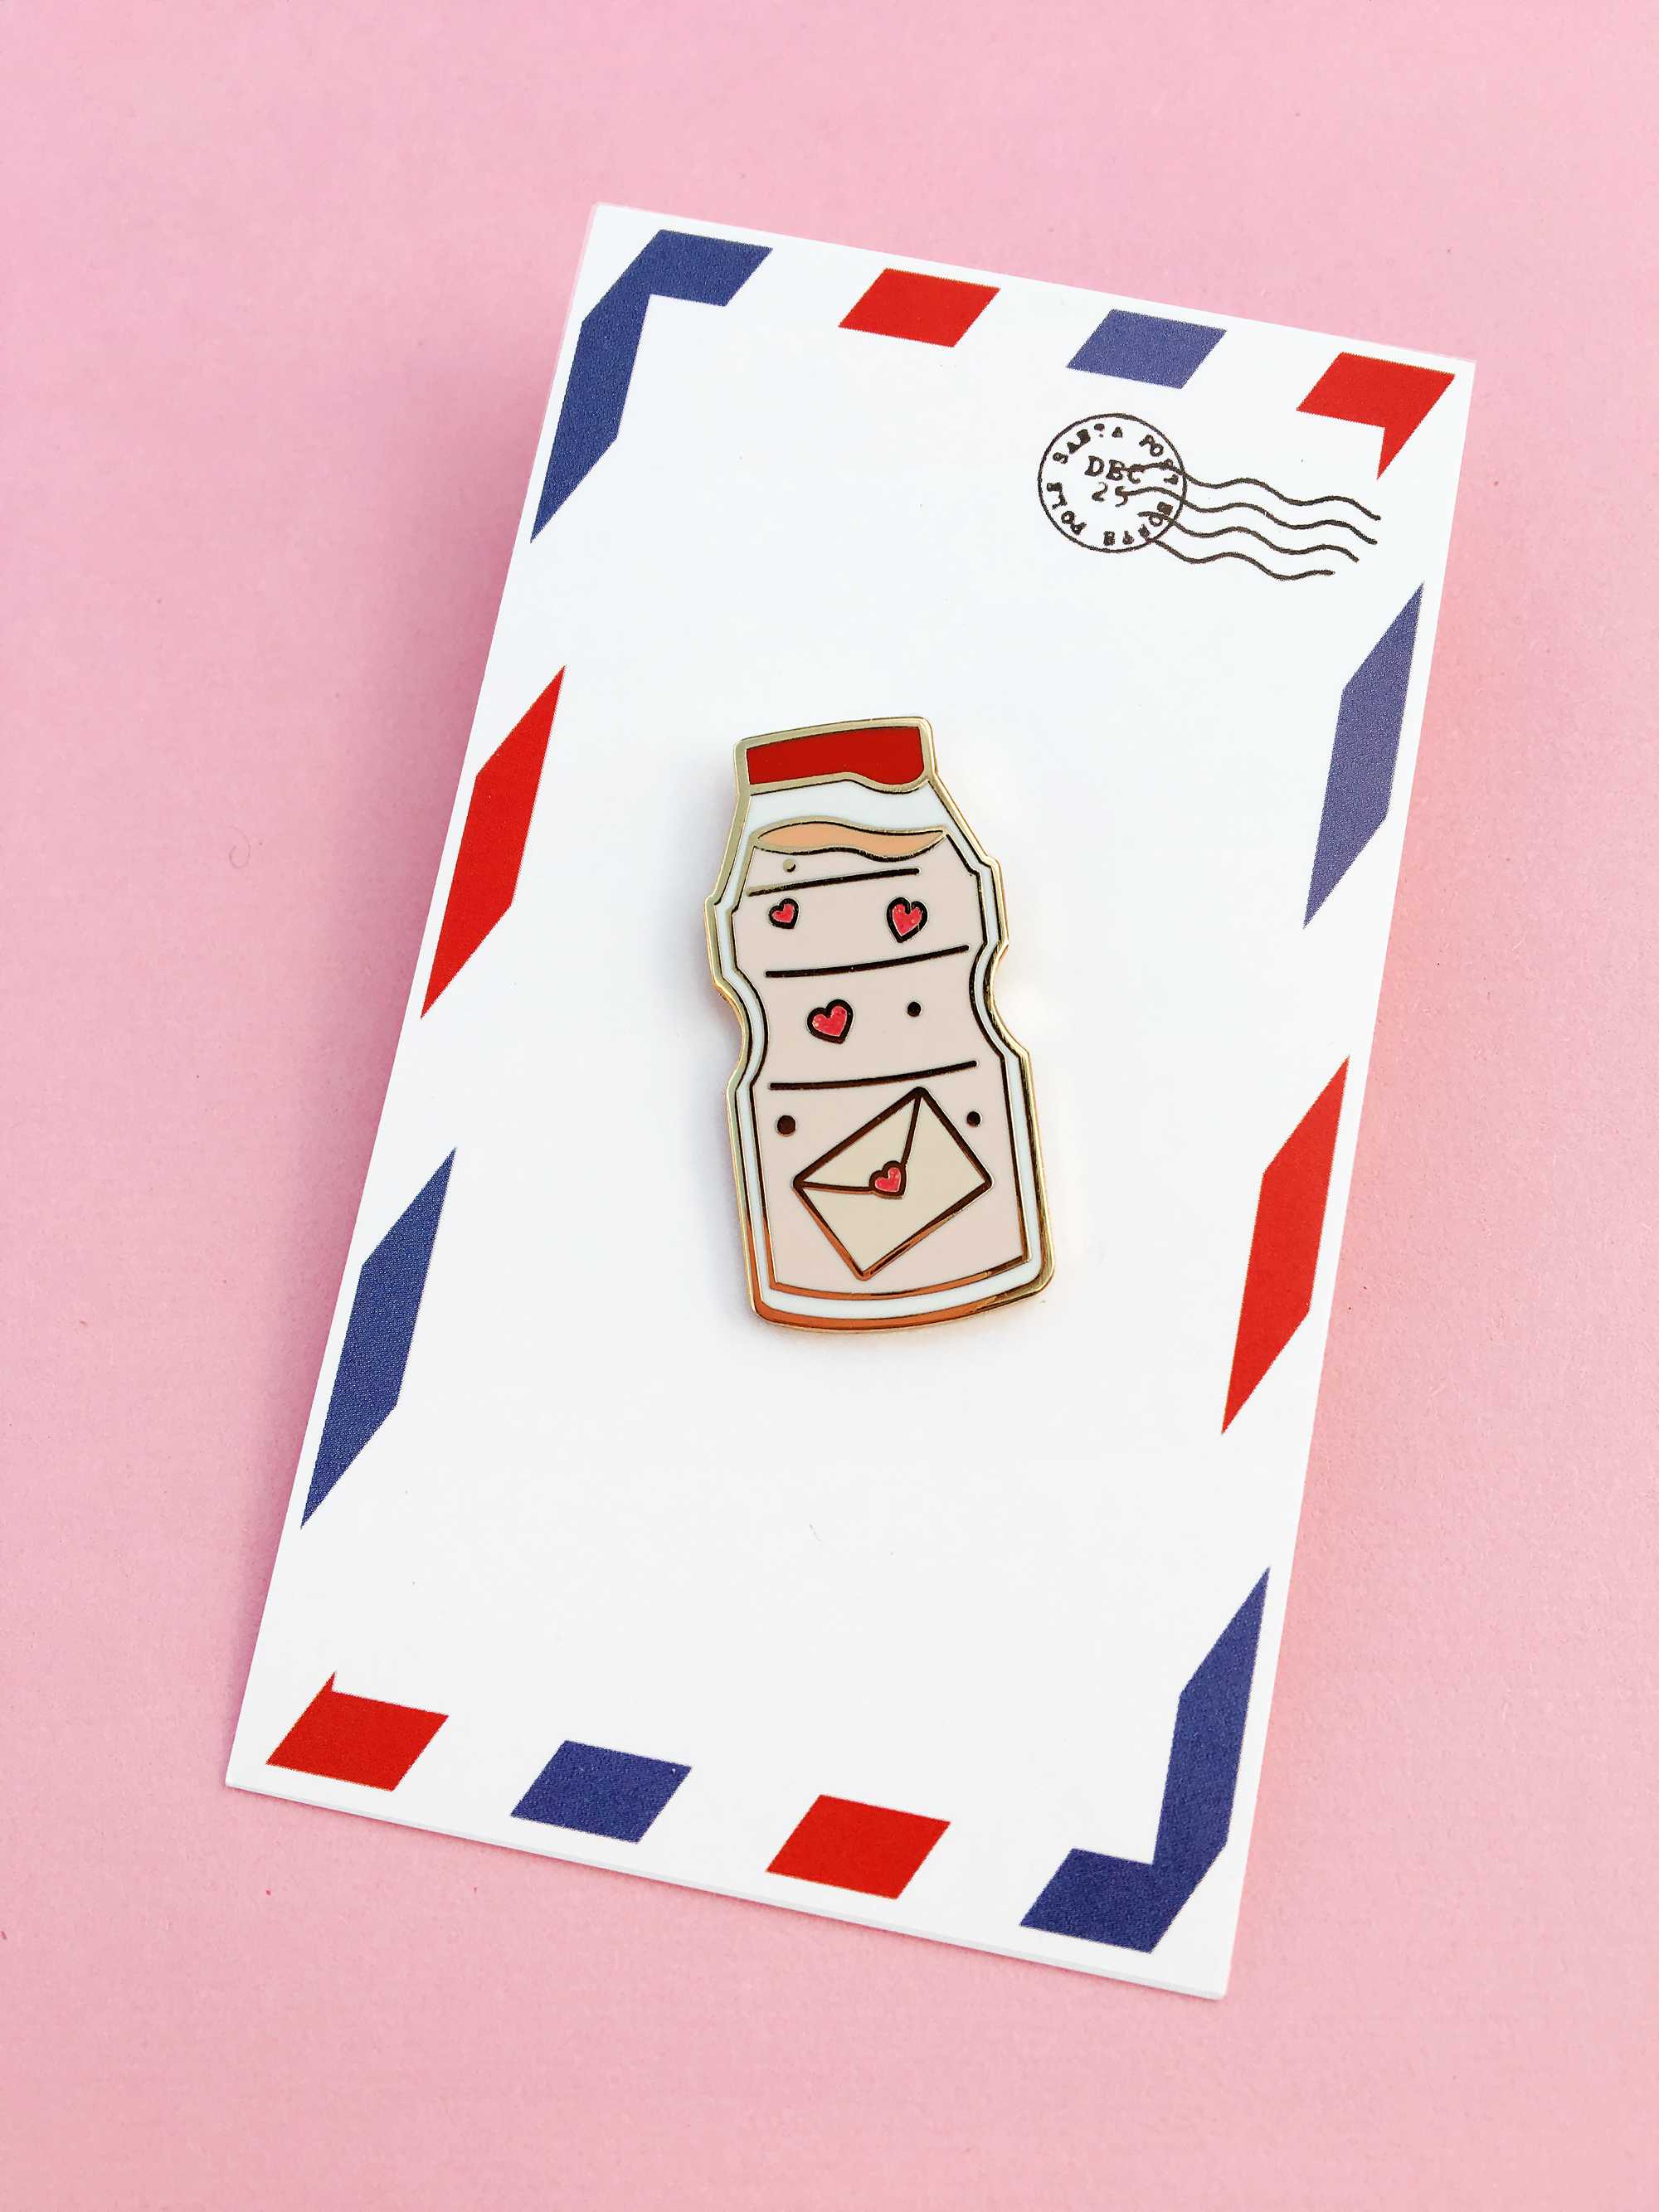 Yakult Enamel Pin To All The Boys I Ve Loved Before Etsy Enamel Pins Cute Bookmarks Cute Pins